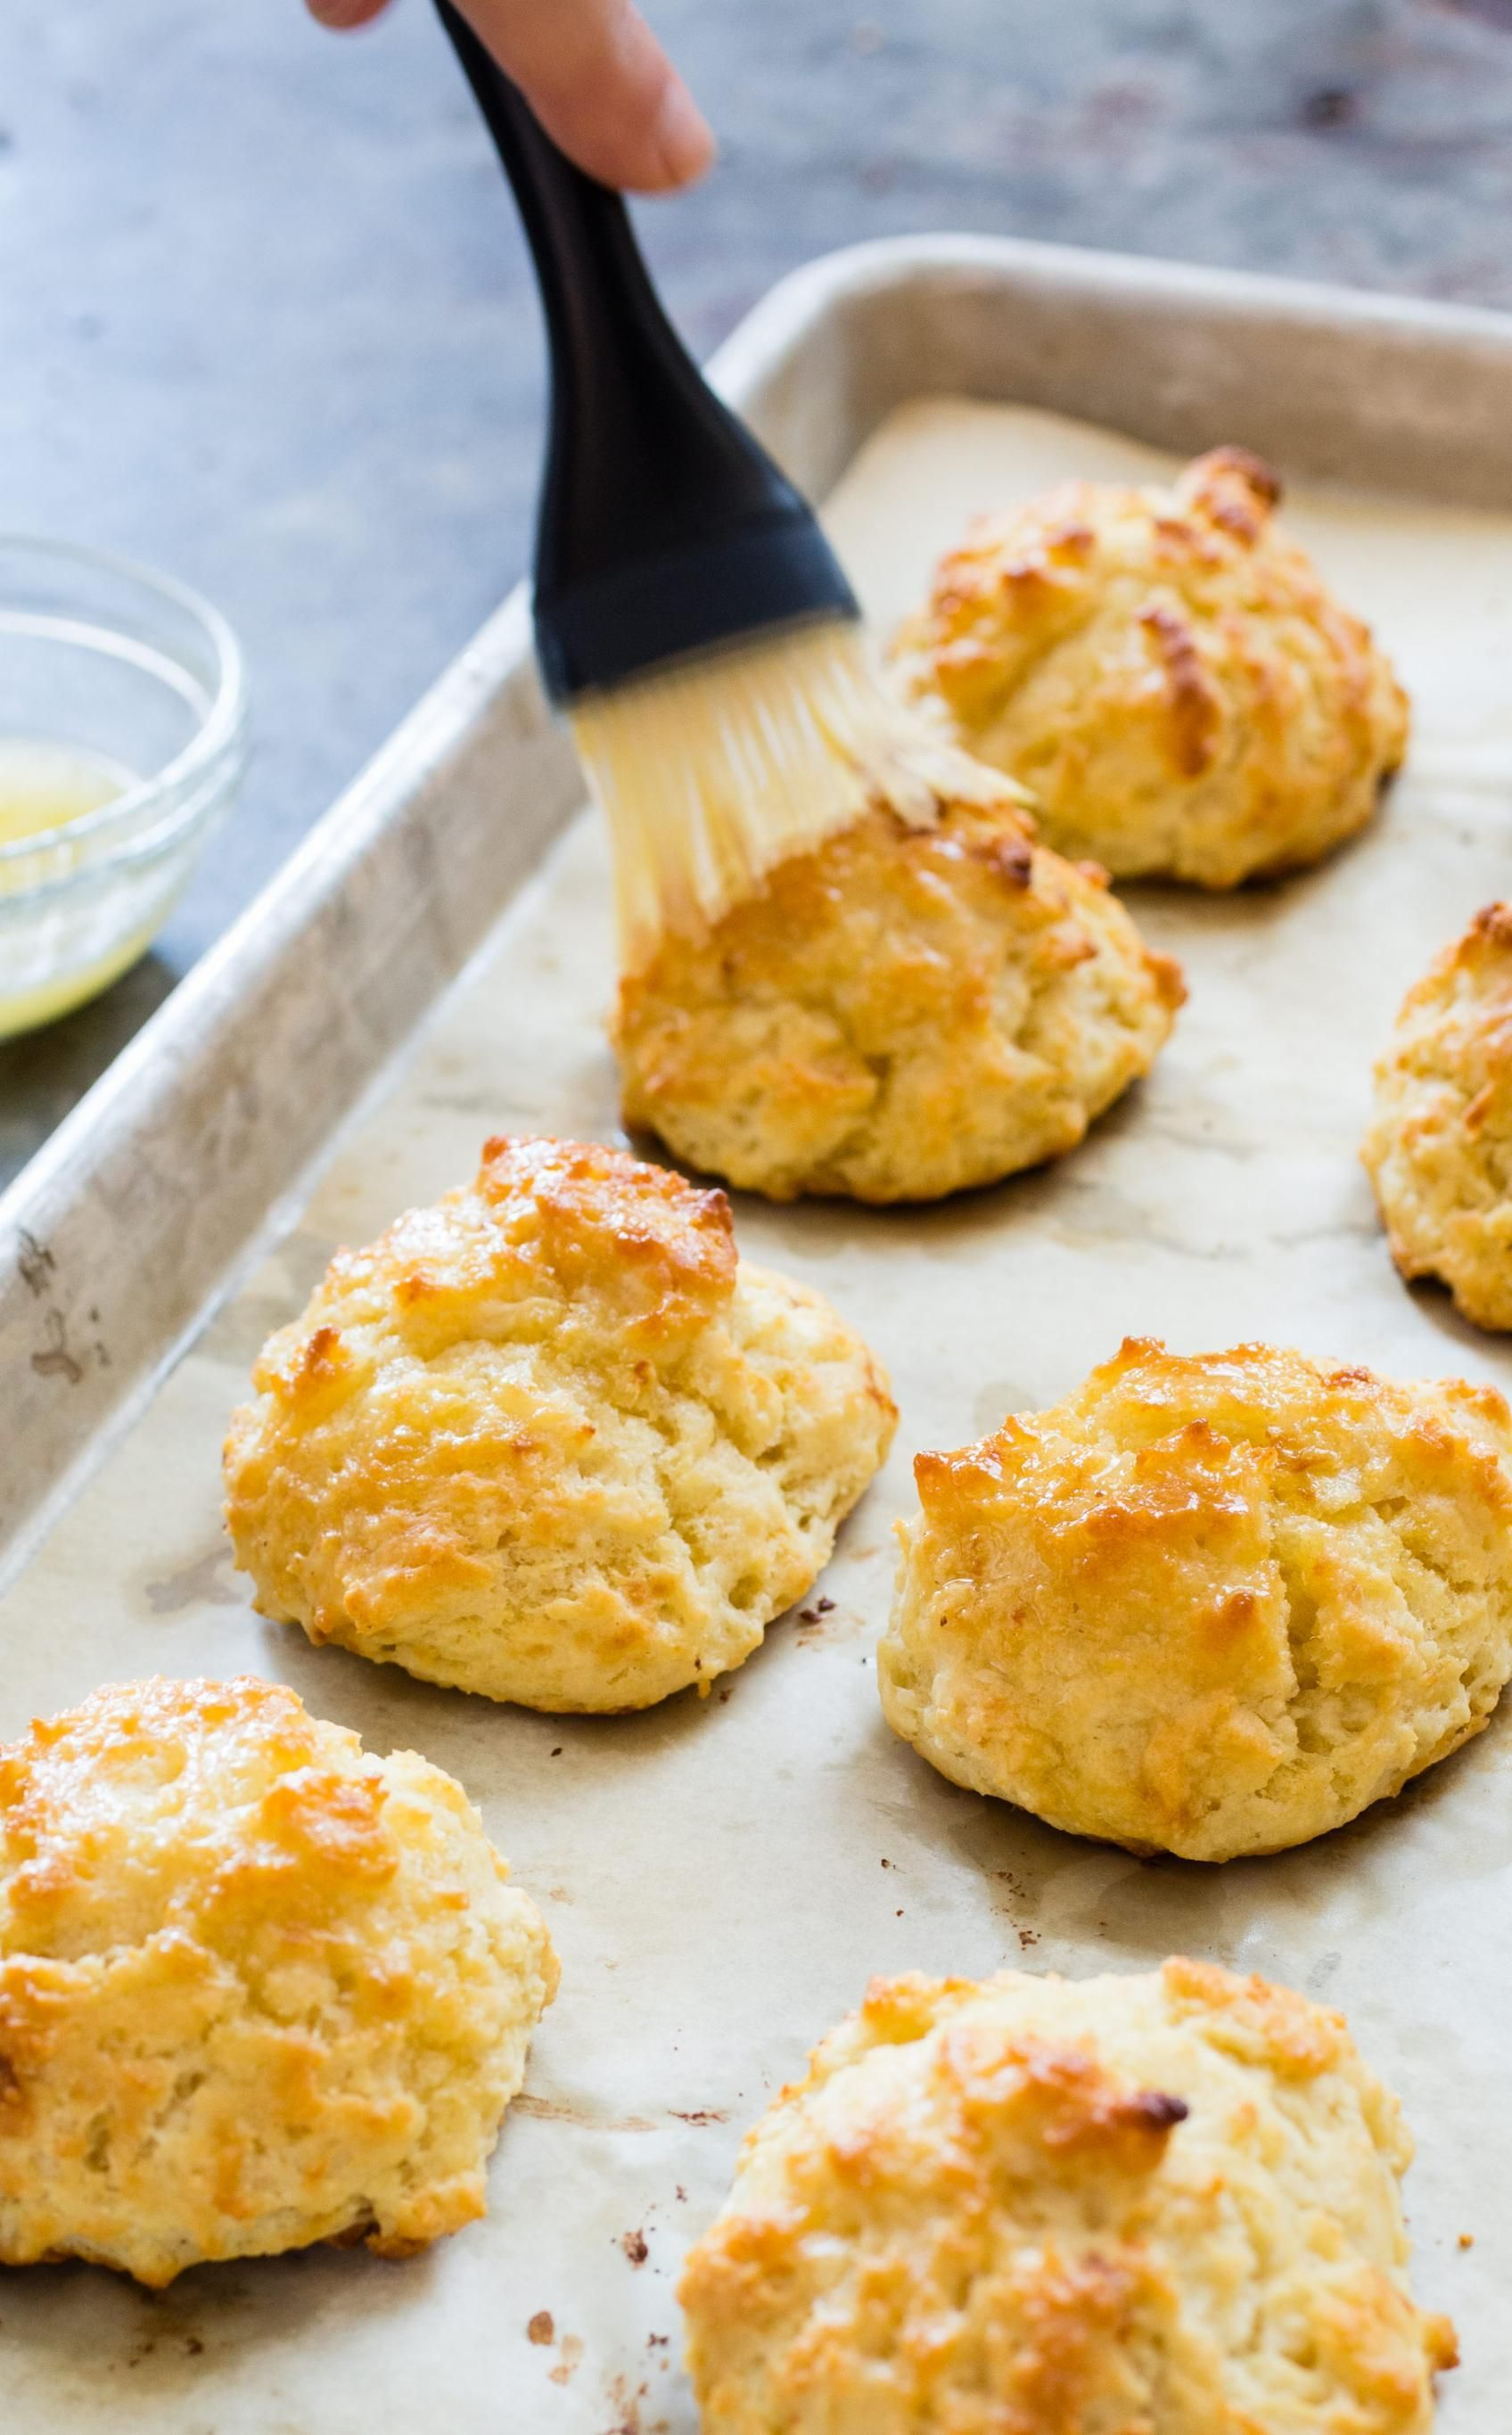 Best Drop Biscuits These Are The Best Who Knew That Buttermilk Biscuits Could Be This Easy And Del With Images Drop Scones Recipes Homemade Drop Biscuits Biscuit Recipe